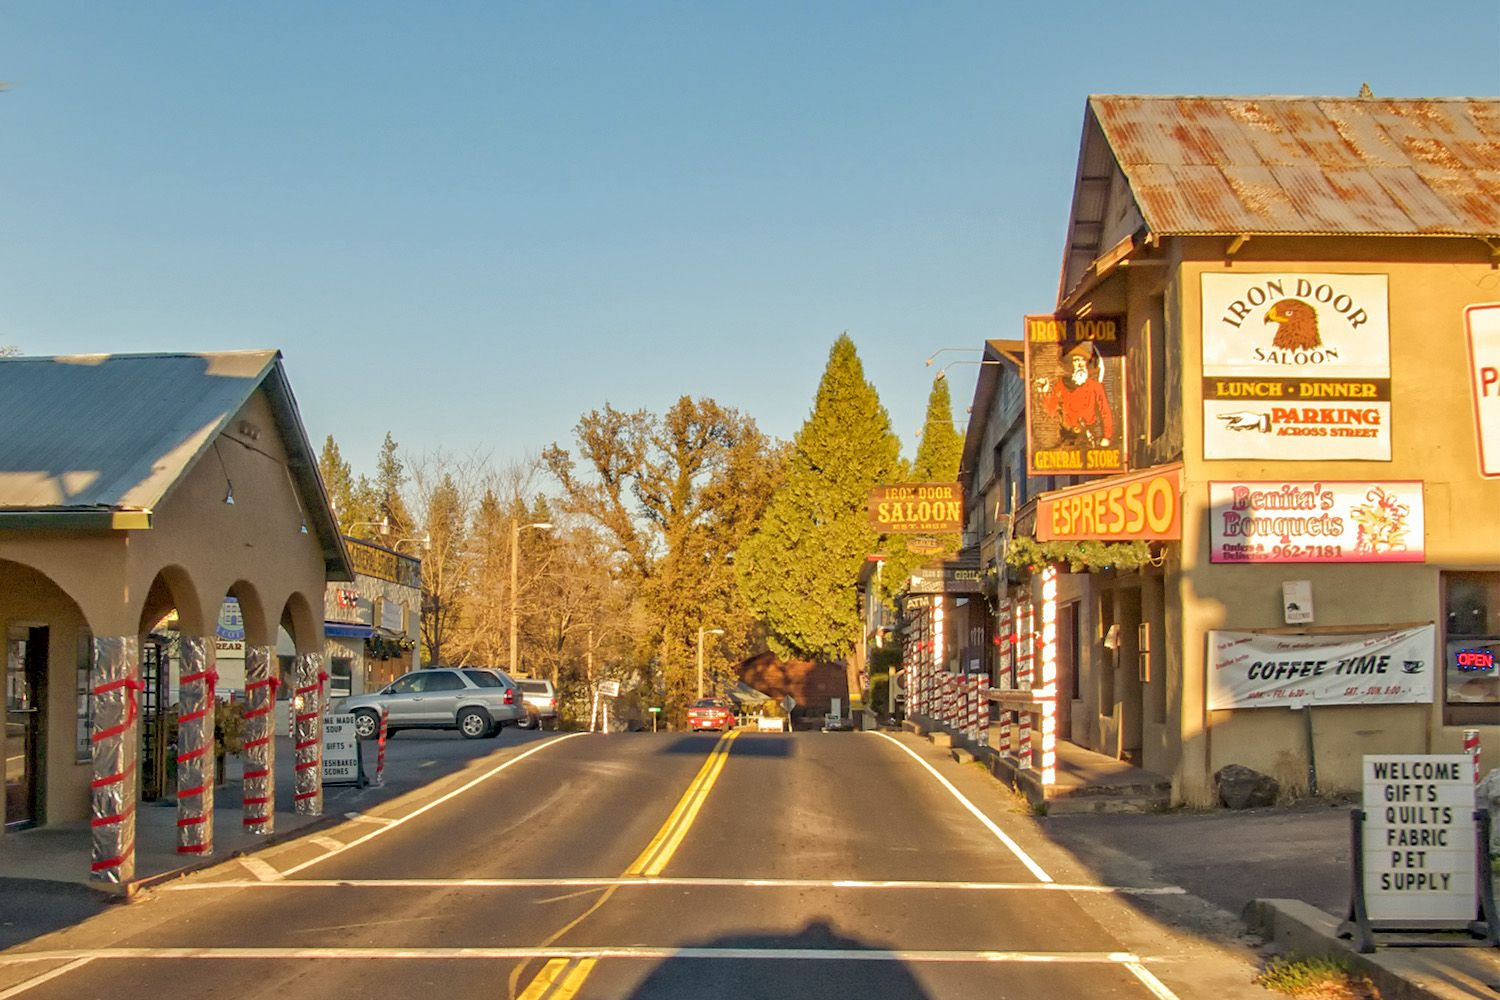 Yosemite Hotels In Groveland And Along Highway 120